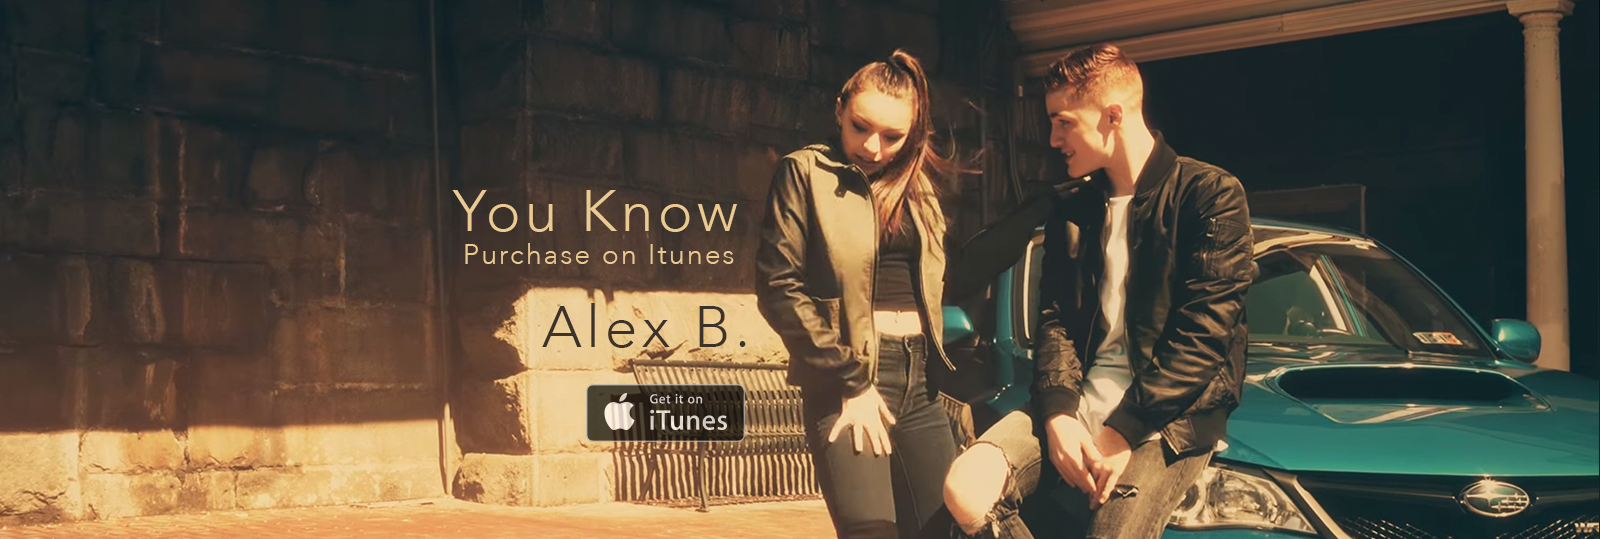 Alex B. - You Know